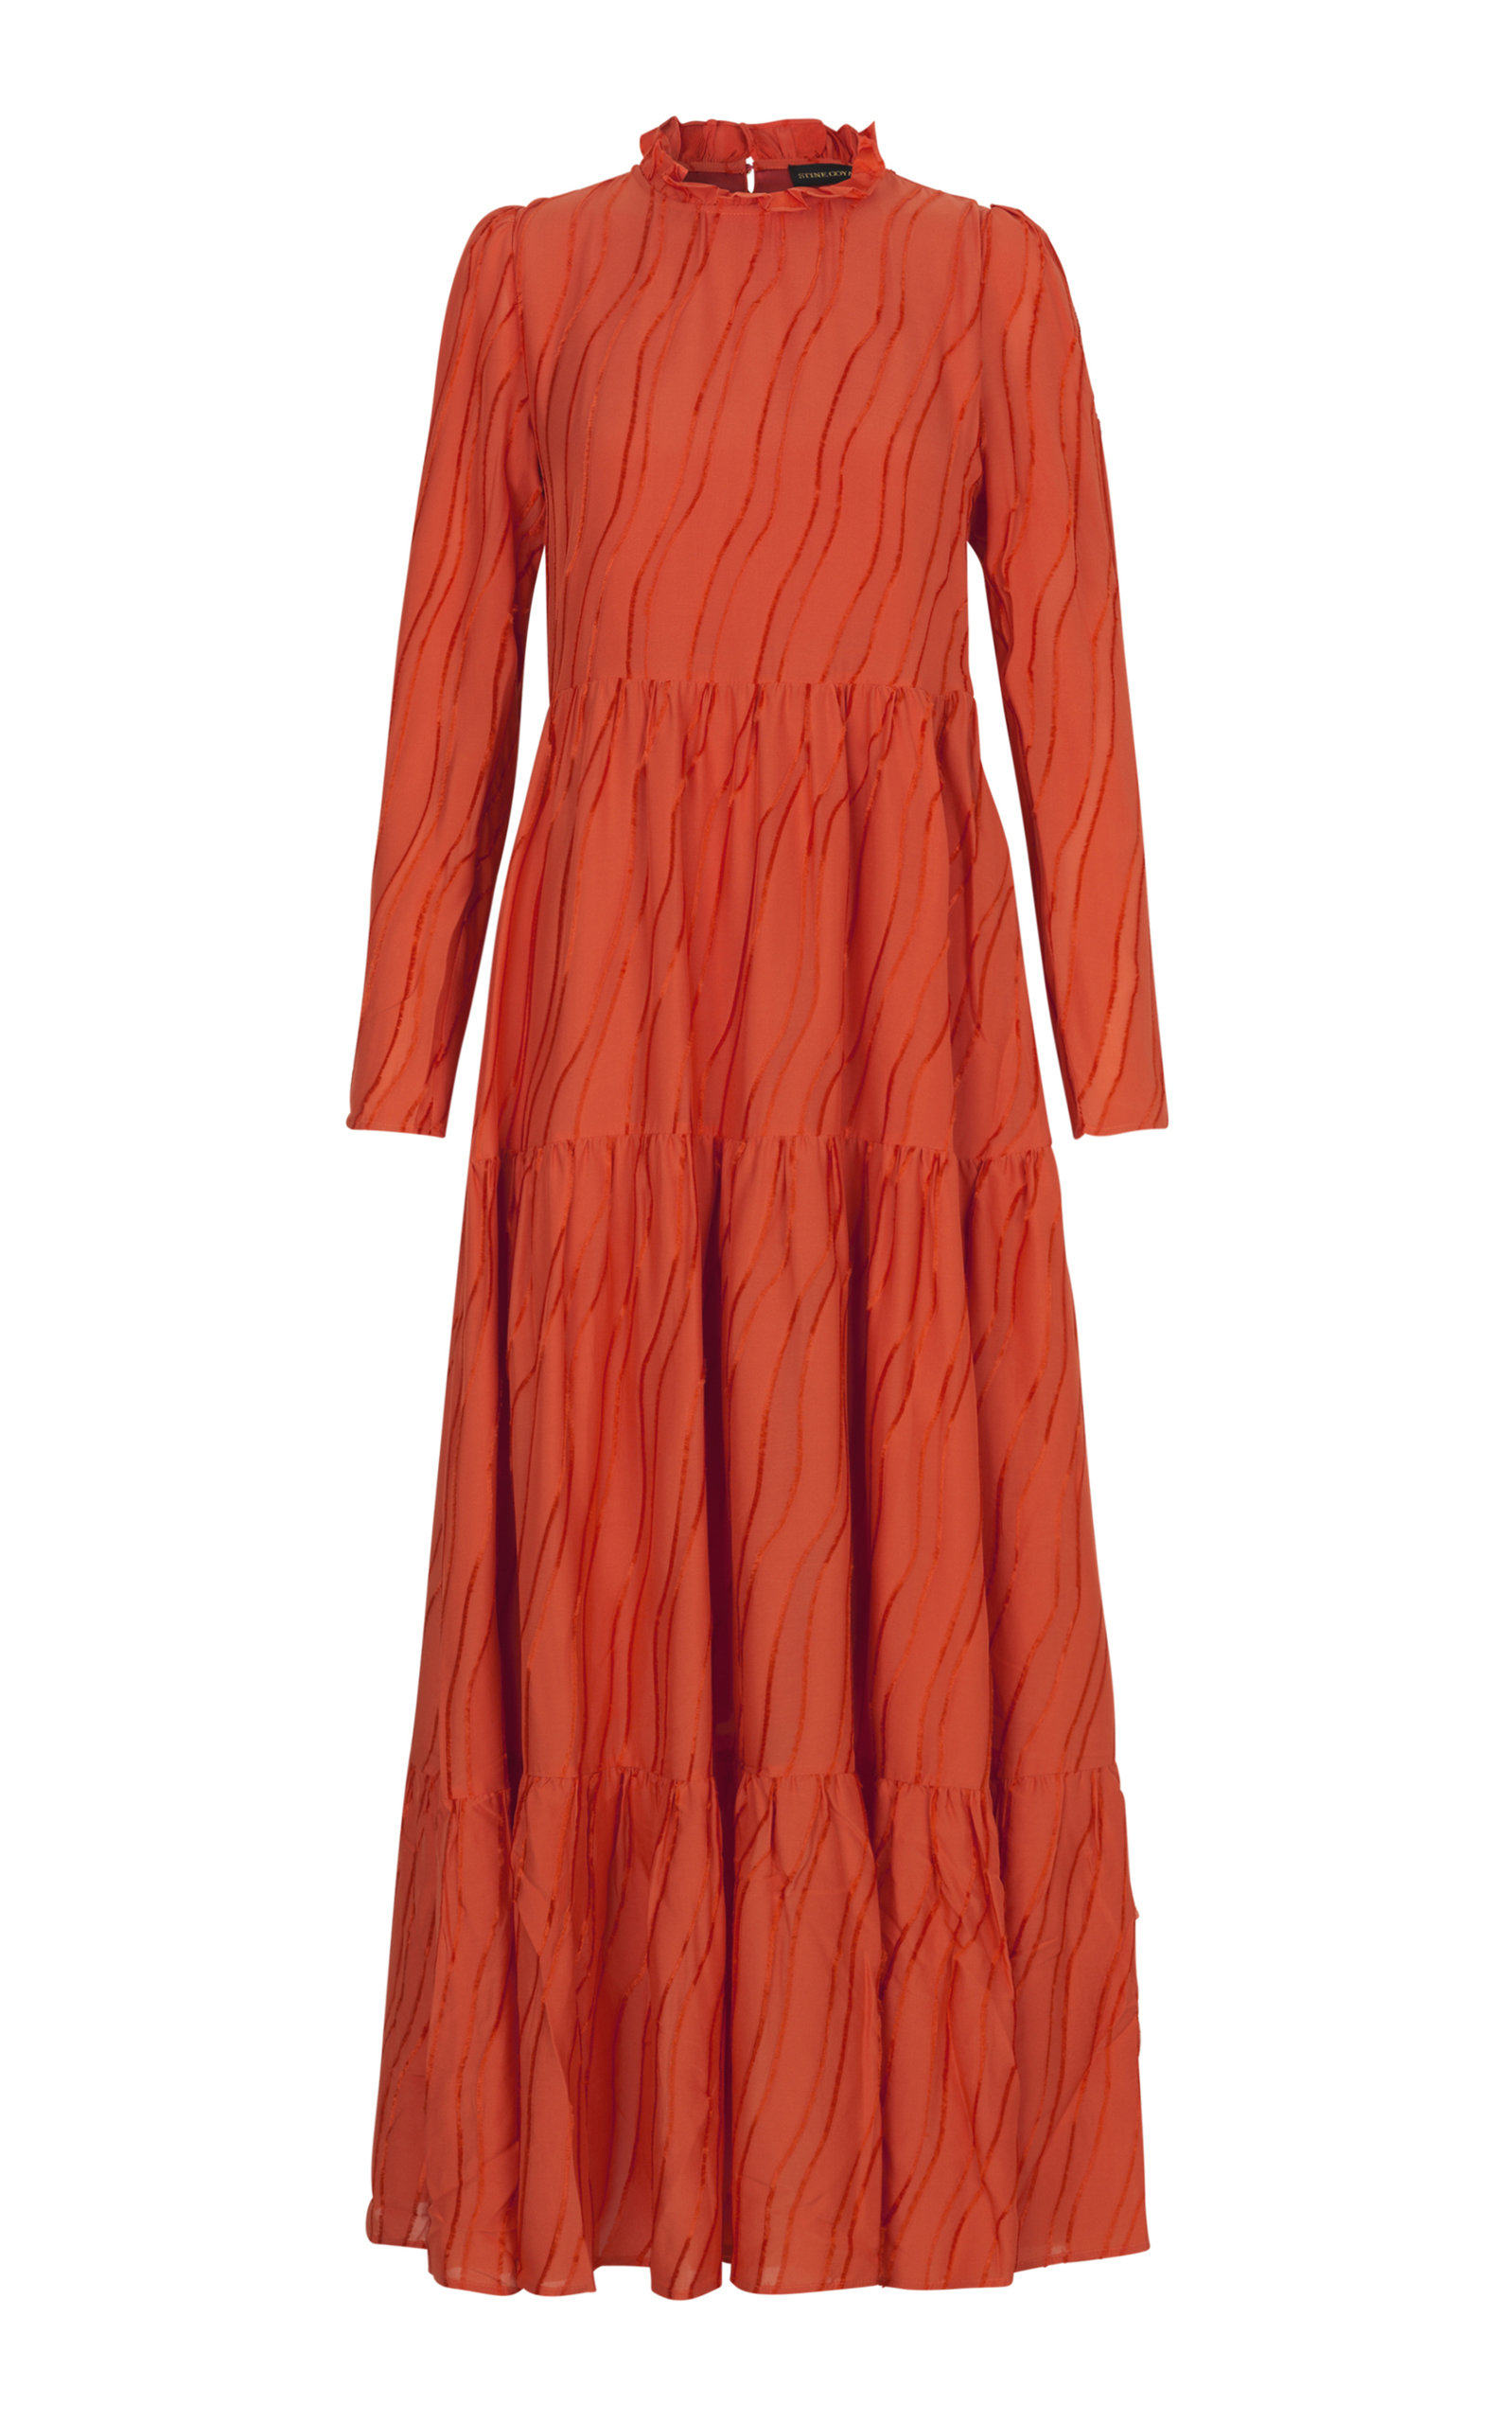 767eef9a3b07 Judy Textured Maxi Dress by Stine Goya | Moda Operandi